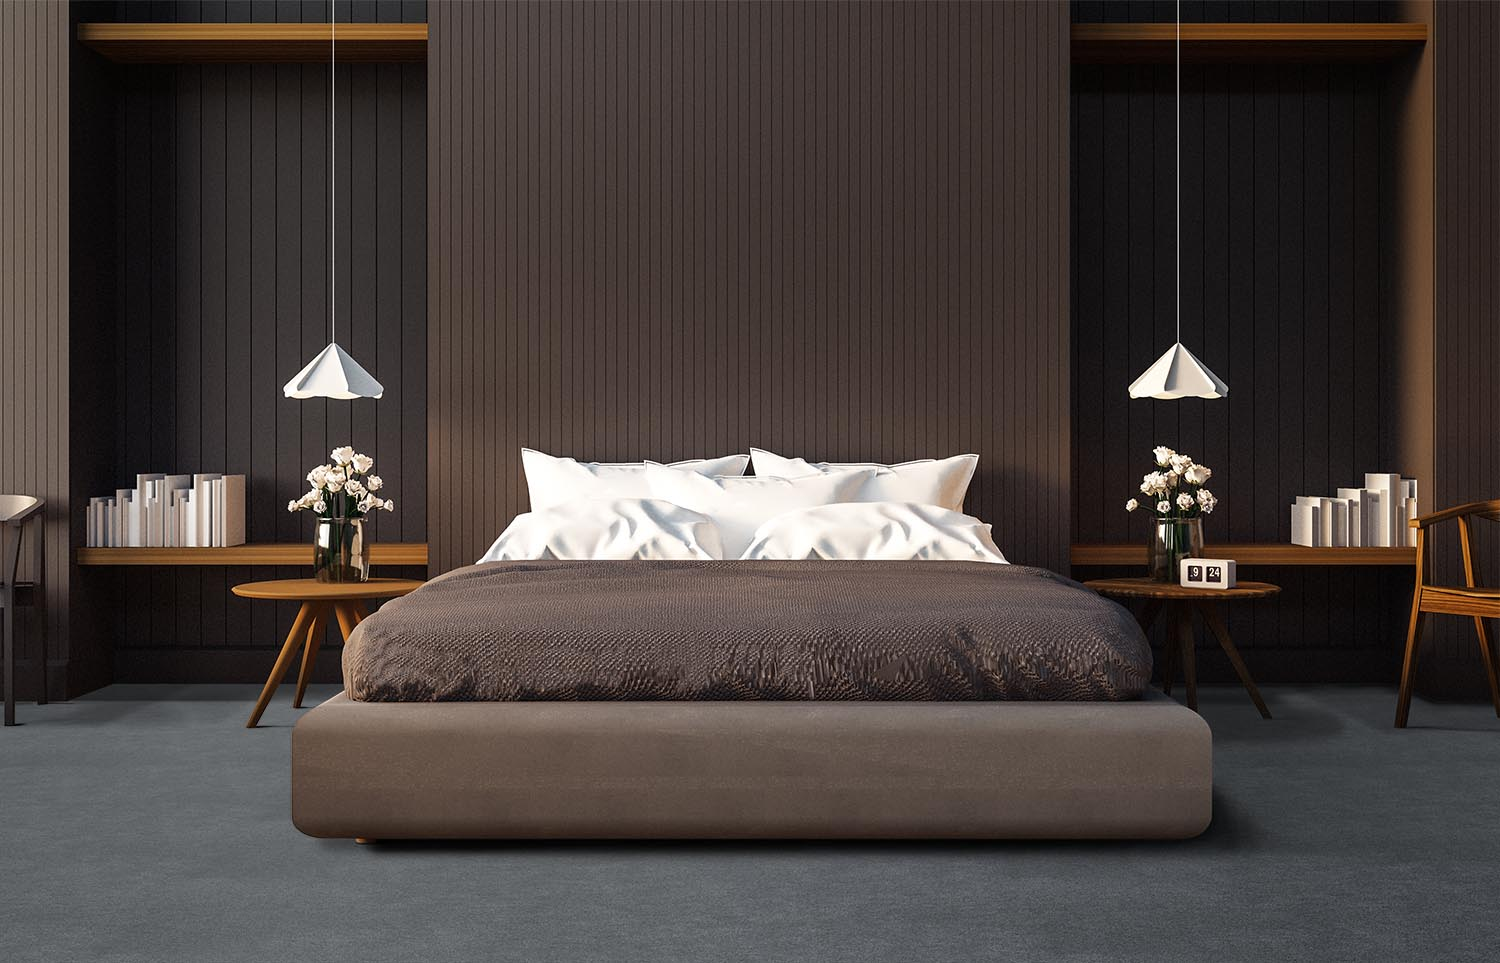 Softology - S301 - Regis contemporary bedroom